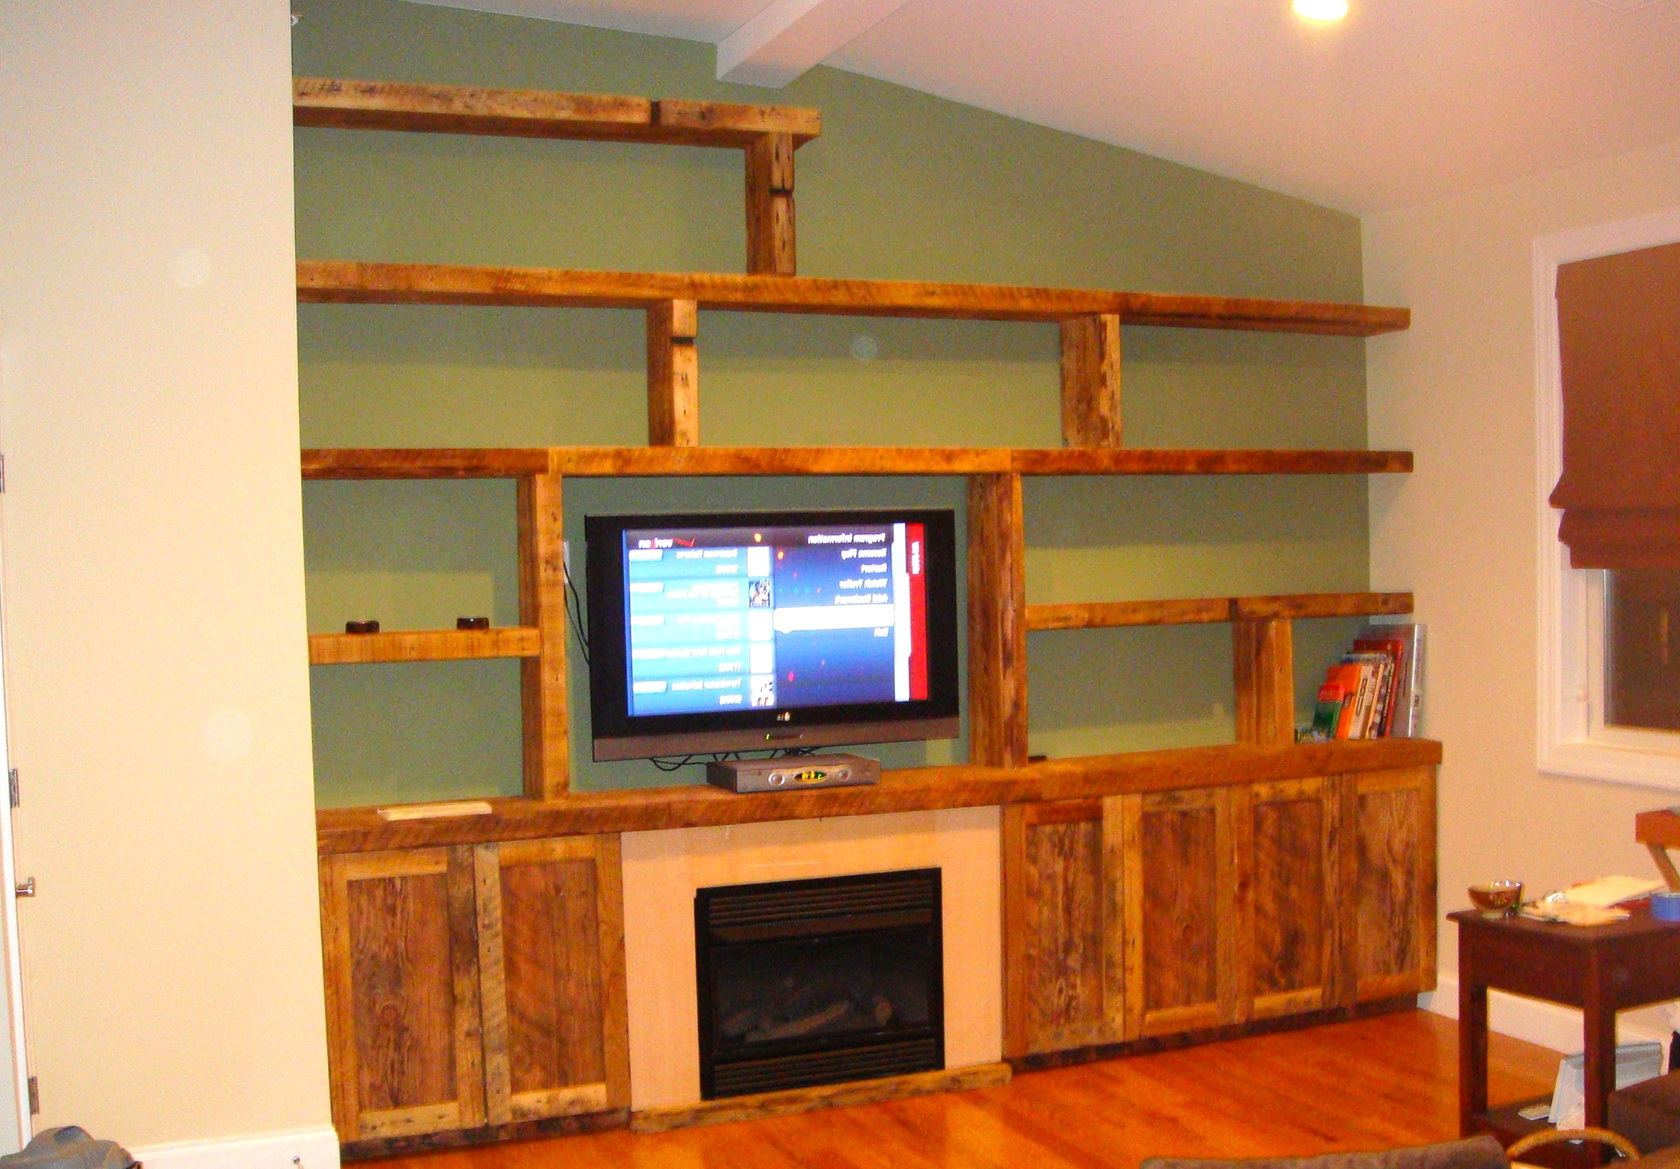 Rustic Wall Shelf Unit